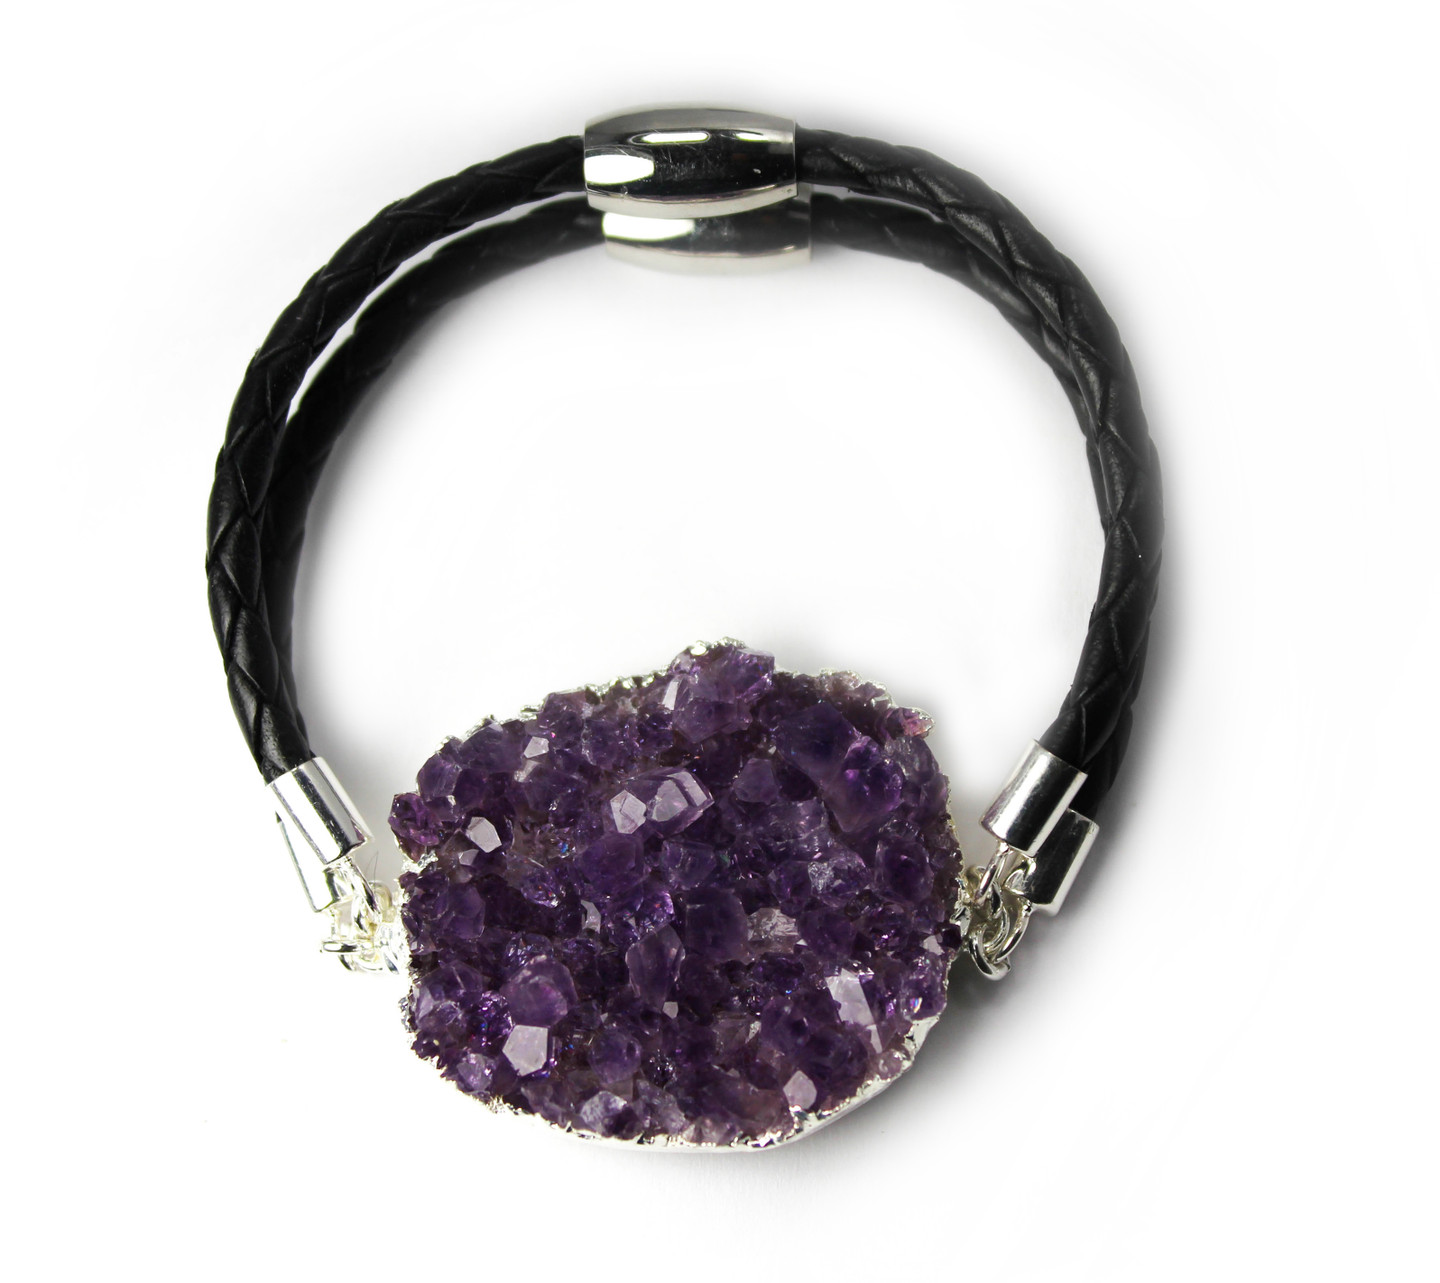 Sterling Silver Druzy Bracelet Double Strand with Large Natural Stone